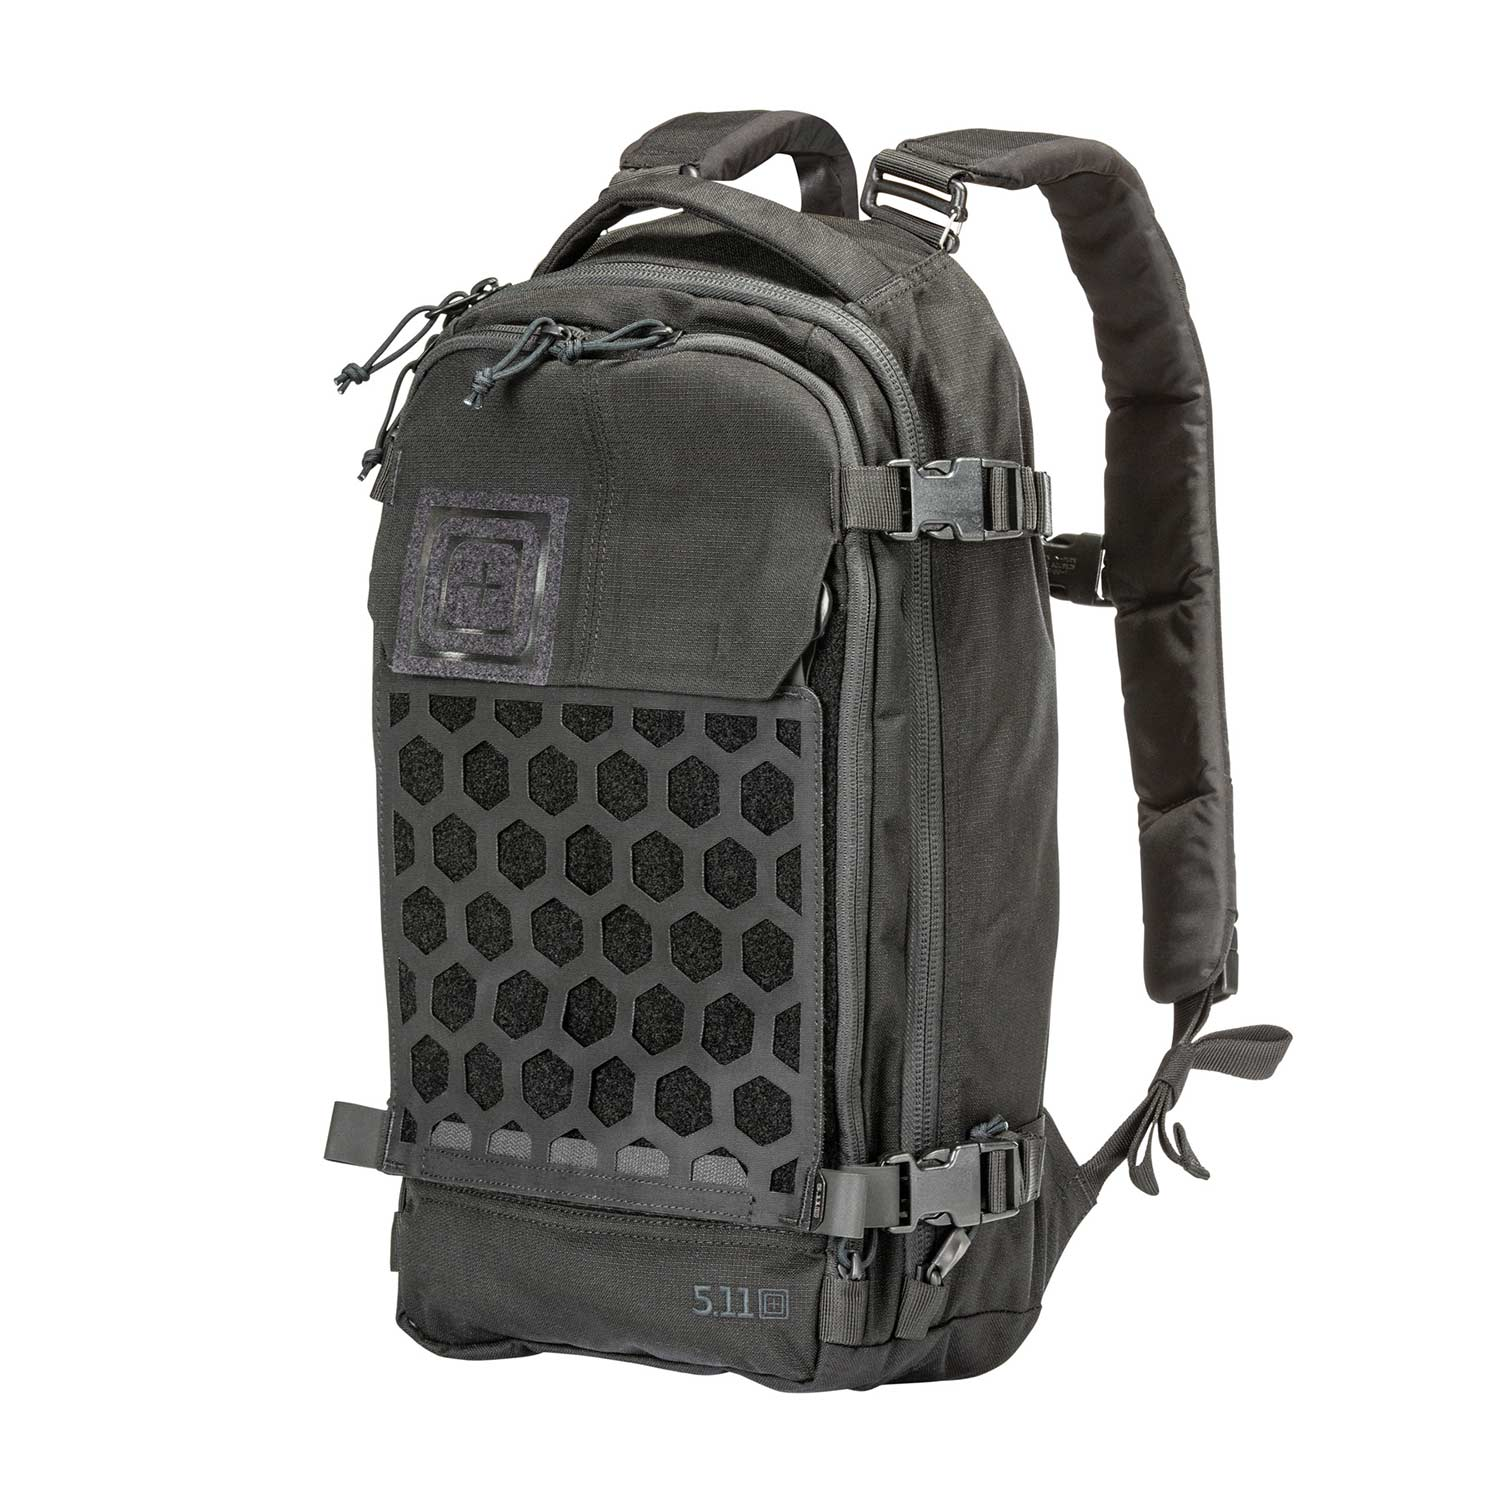 5.11 Tactical AMP 10 Backpack